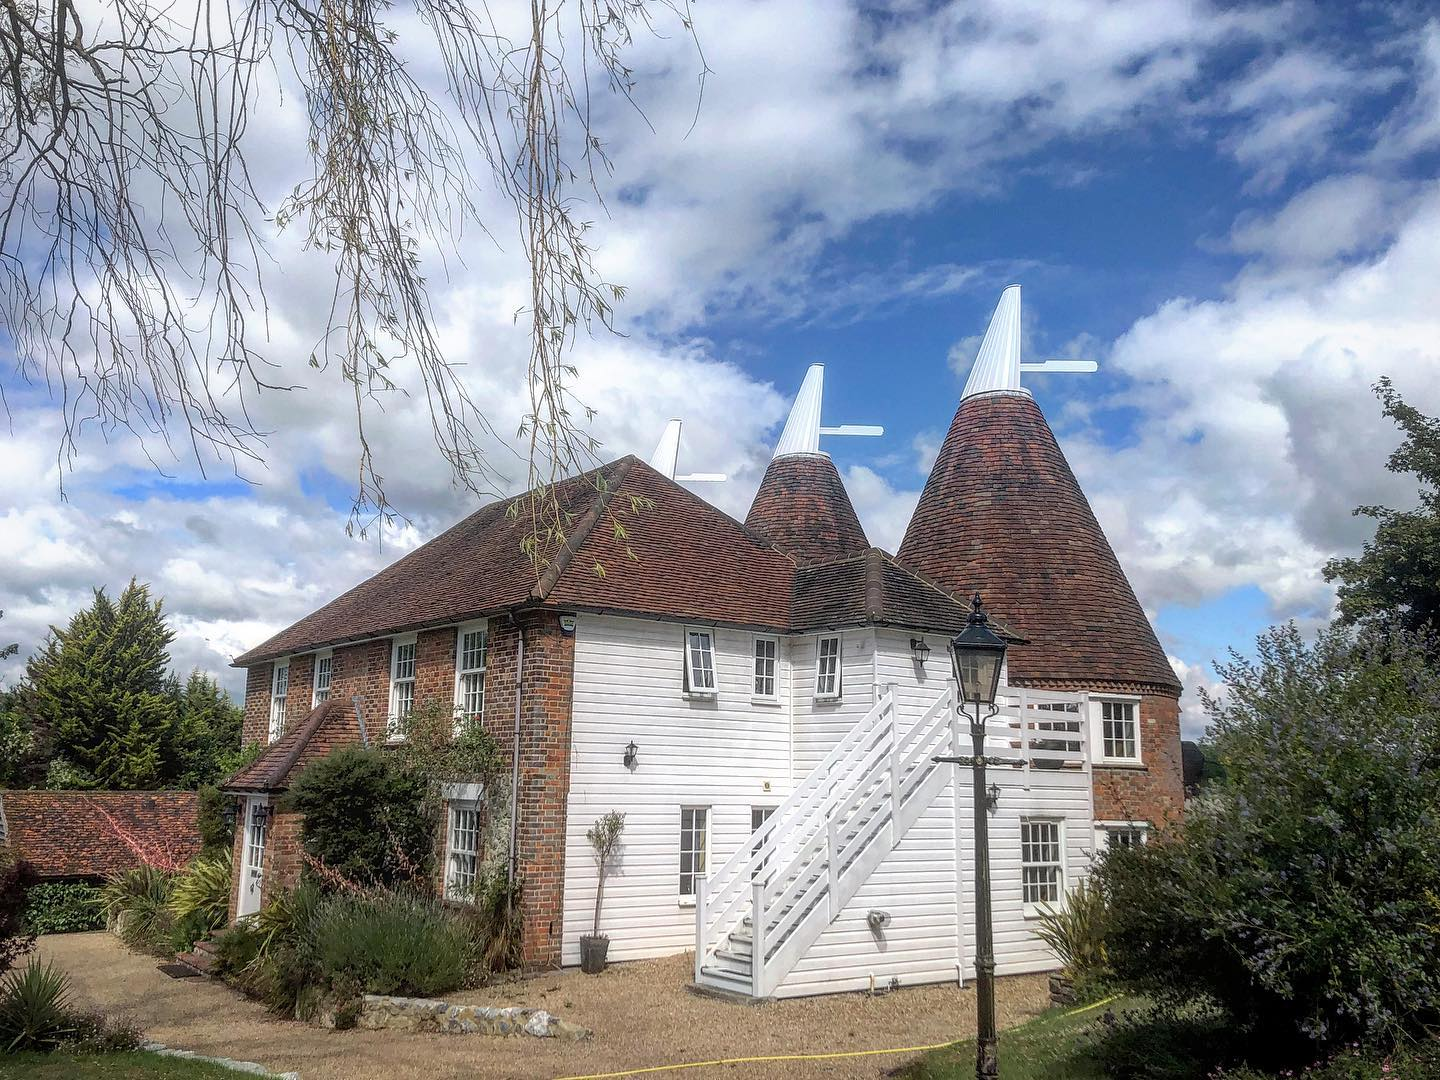 Make an oast house your home